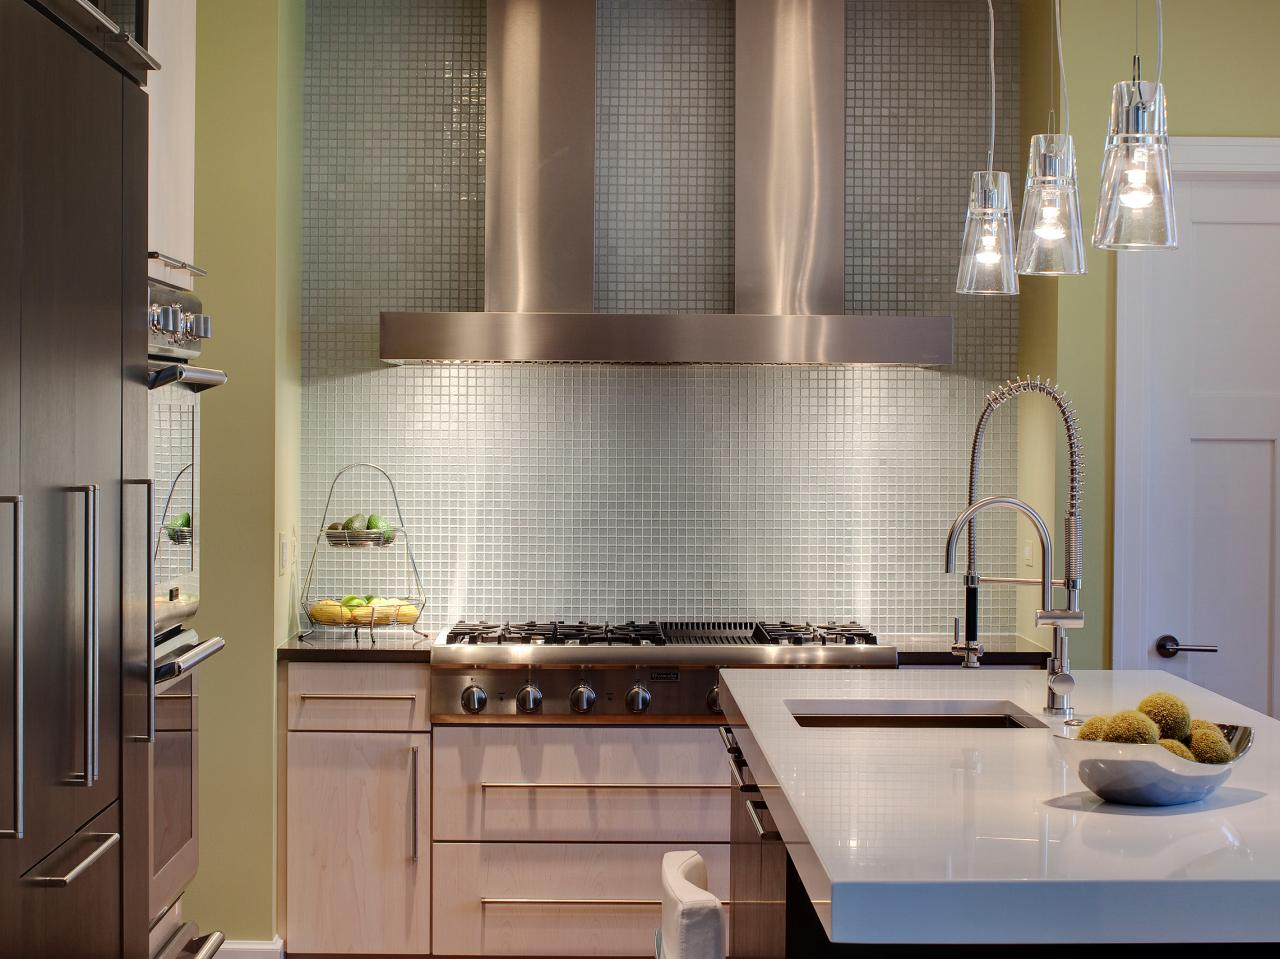 15 Kitchen Backsplashes For Every Style Kitchen Ideas Design With Cabinets Islands